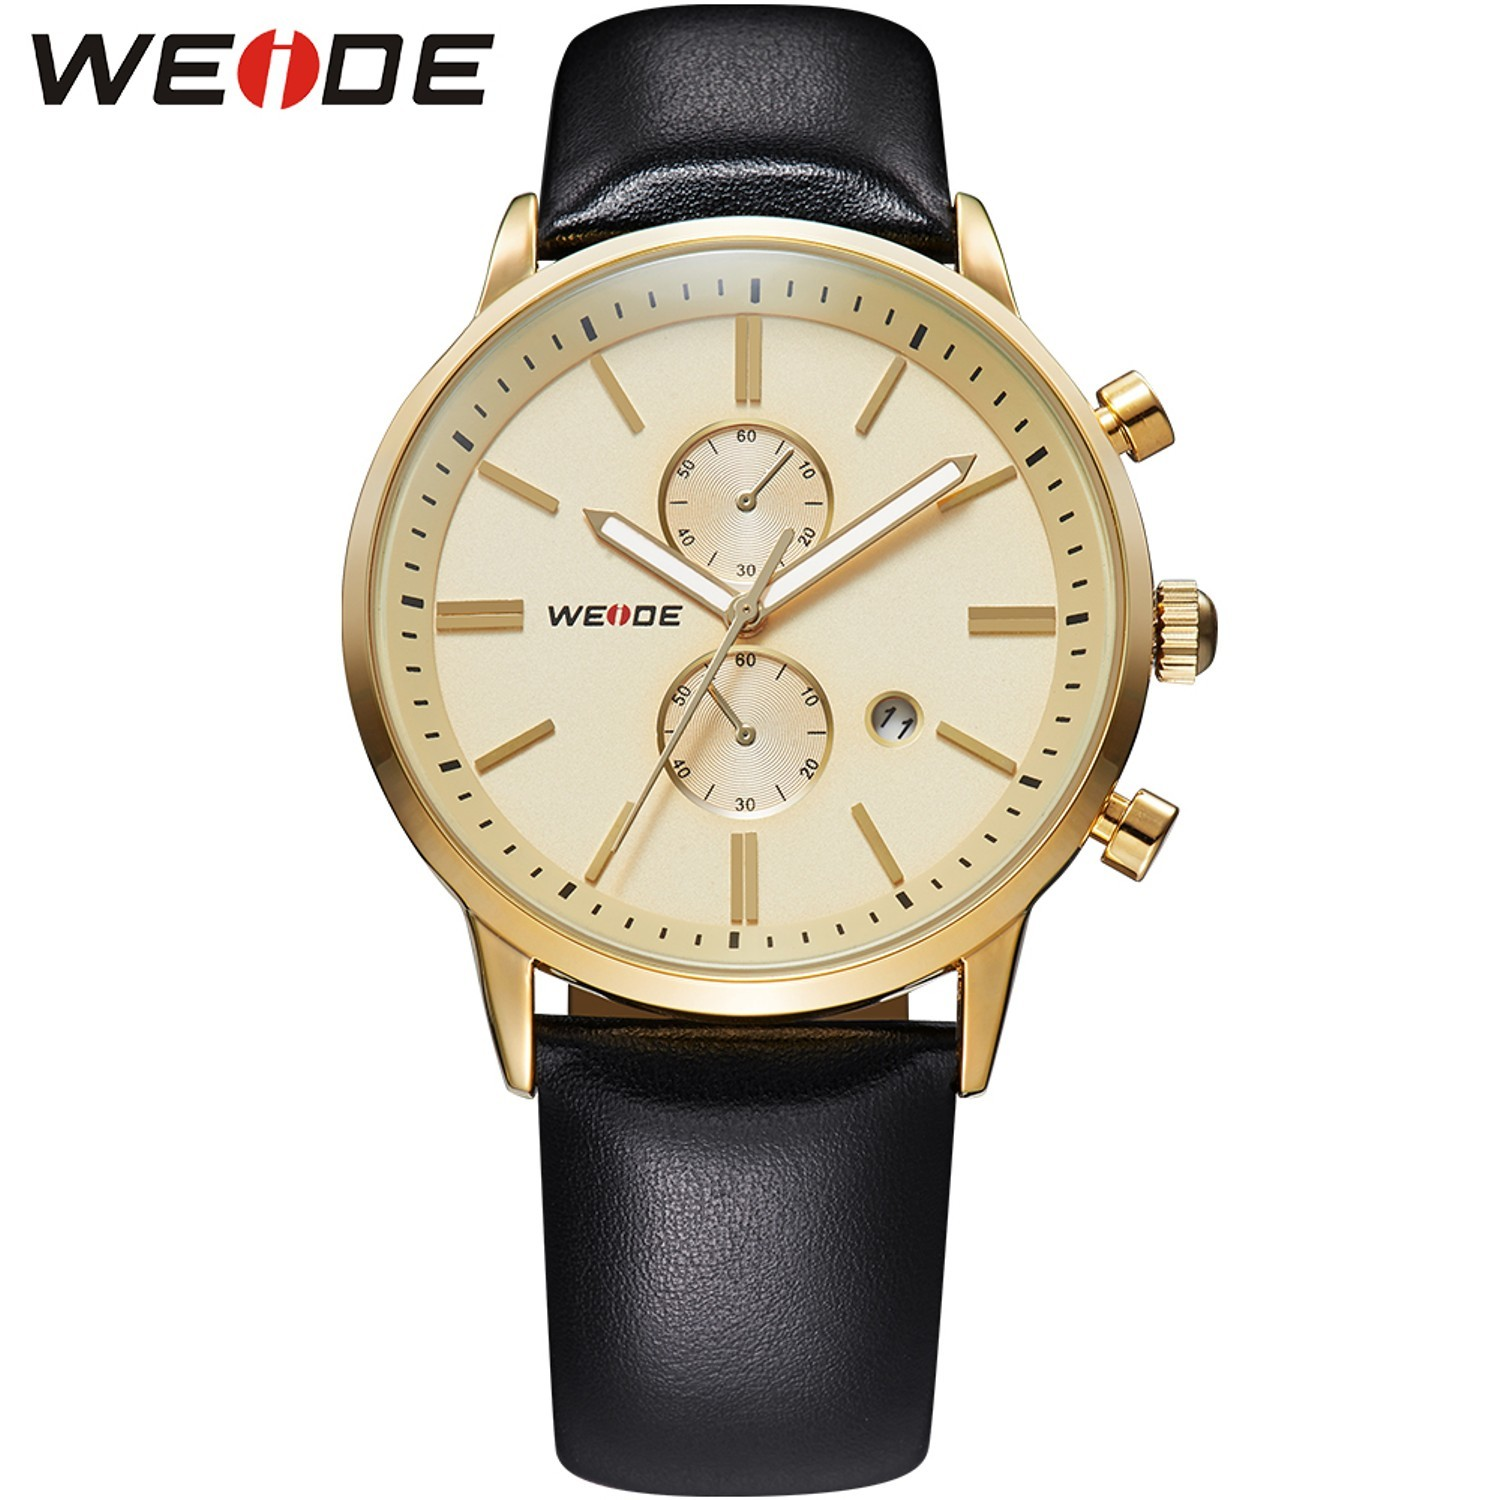 WEIDE-Military-Sports-Watches-Men-Luxury-Brand-Golden-Dial-Analog-Display-Genuine-Leather-Strap-Watch-Waterproof_1500x1500_STRETCH_91.jpg